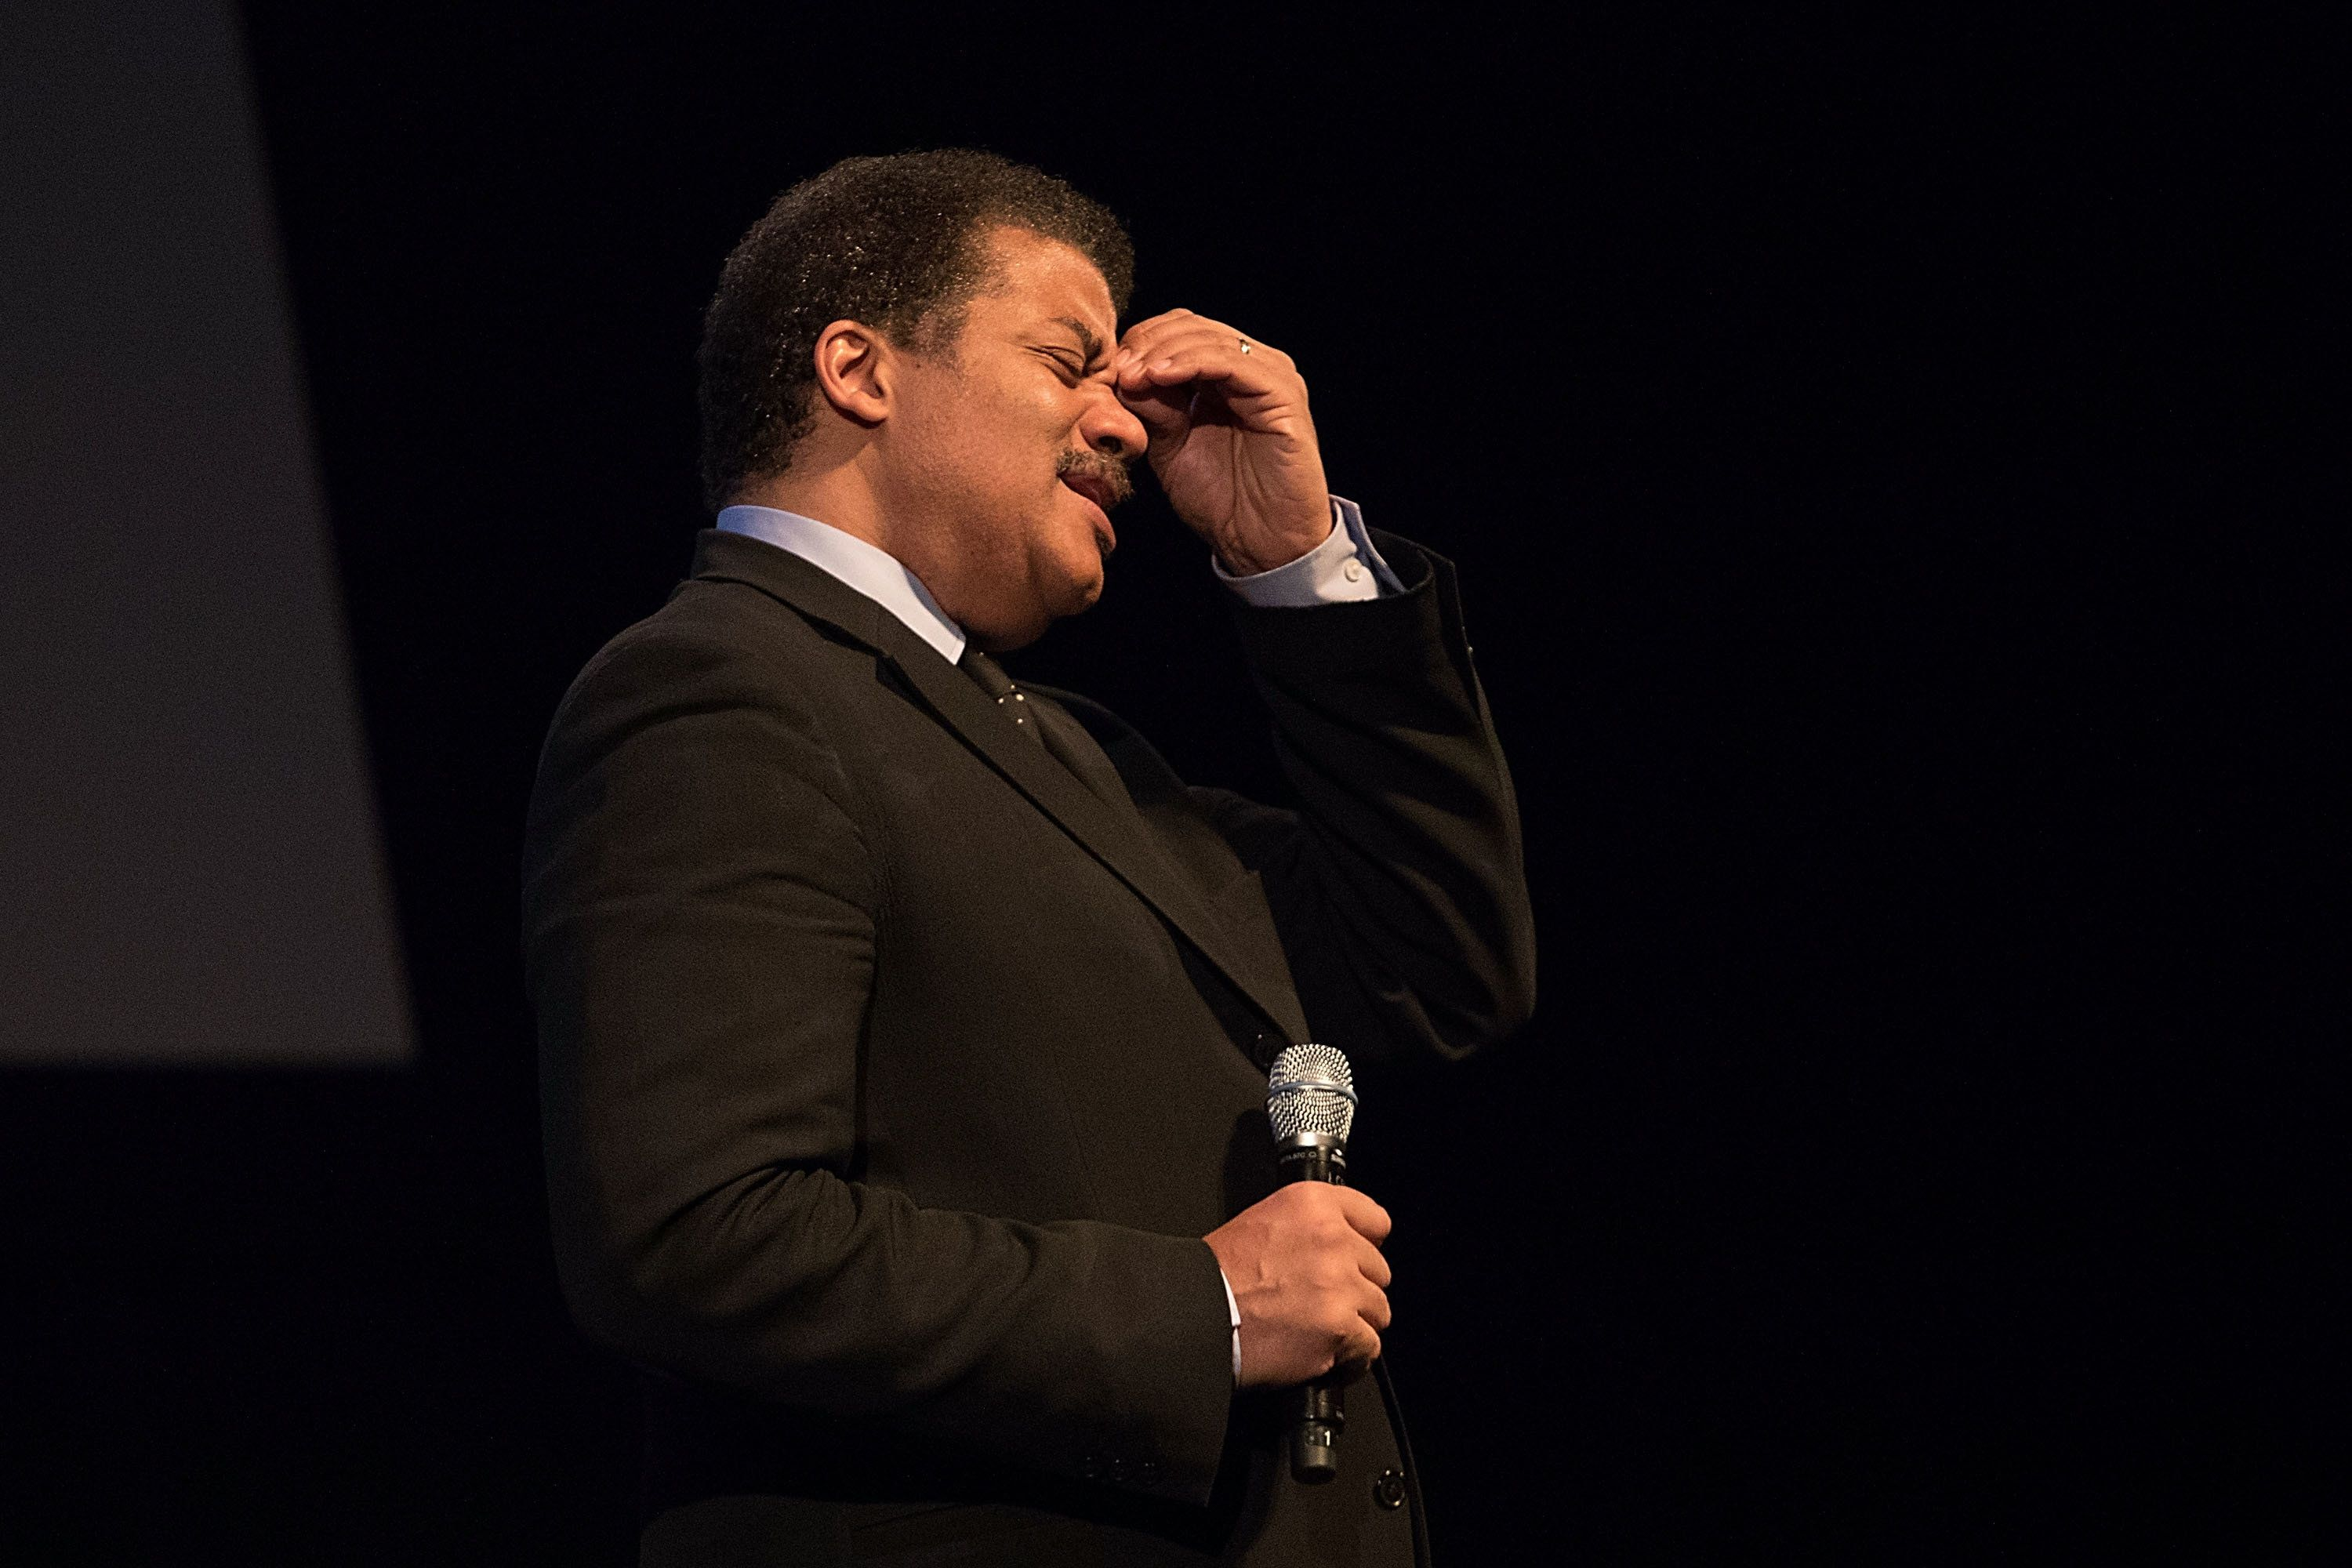 AUSTIN, TX - JANUARY 18:  Astrophysicist Neil deGrasse Tyson speaks onstage at the Long Center on January 18, 2017 in Austin, Texas.  (Photo by Rick Kern/WireImage)